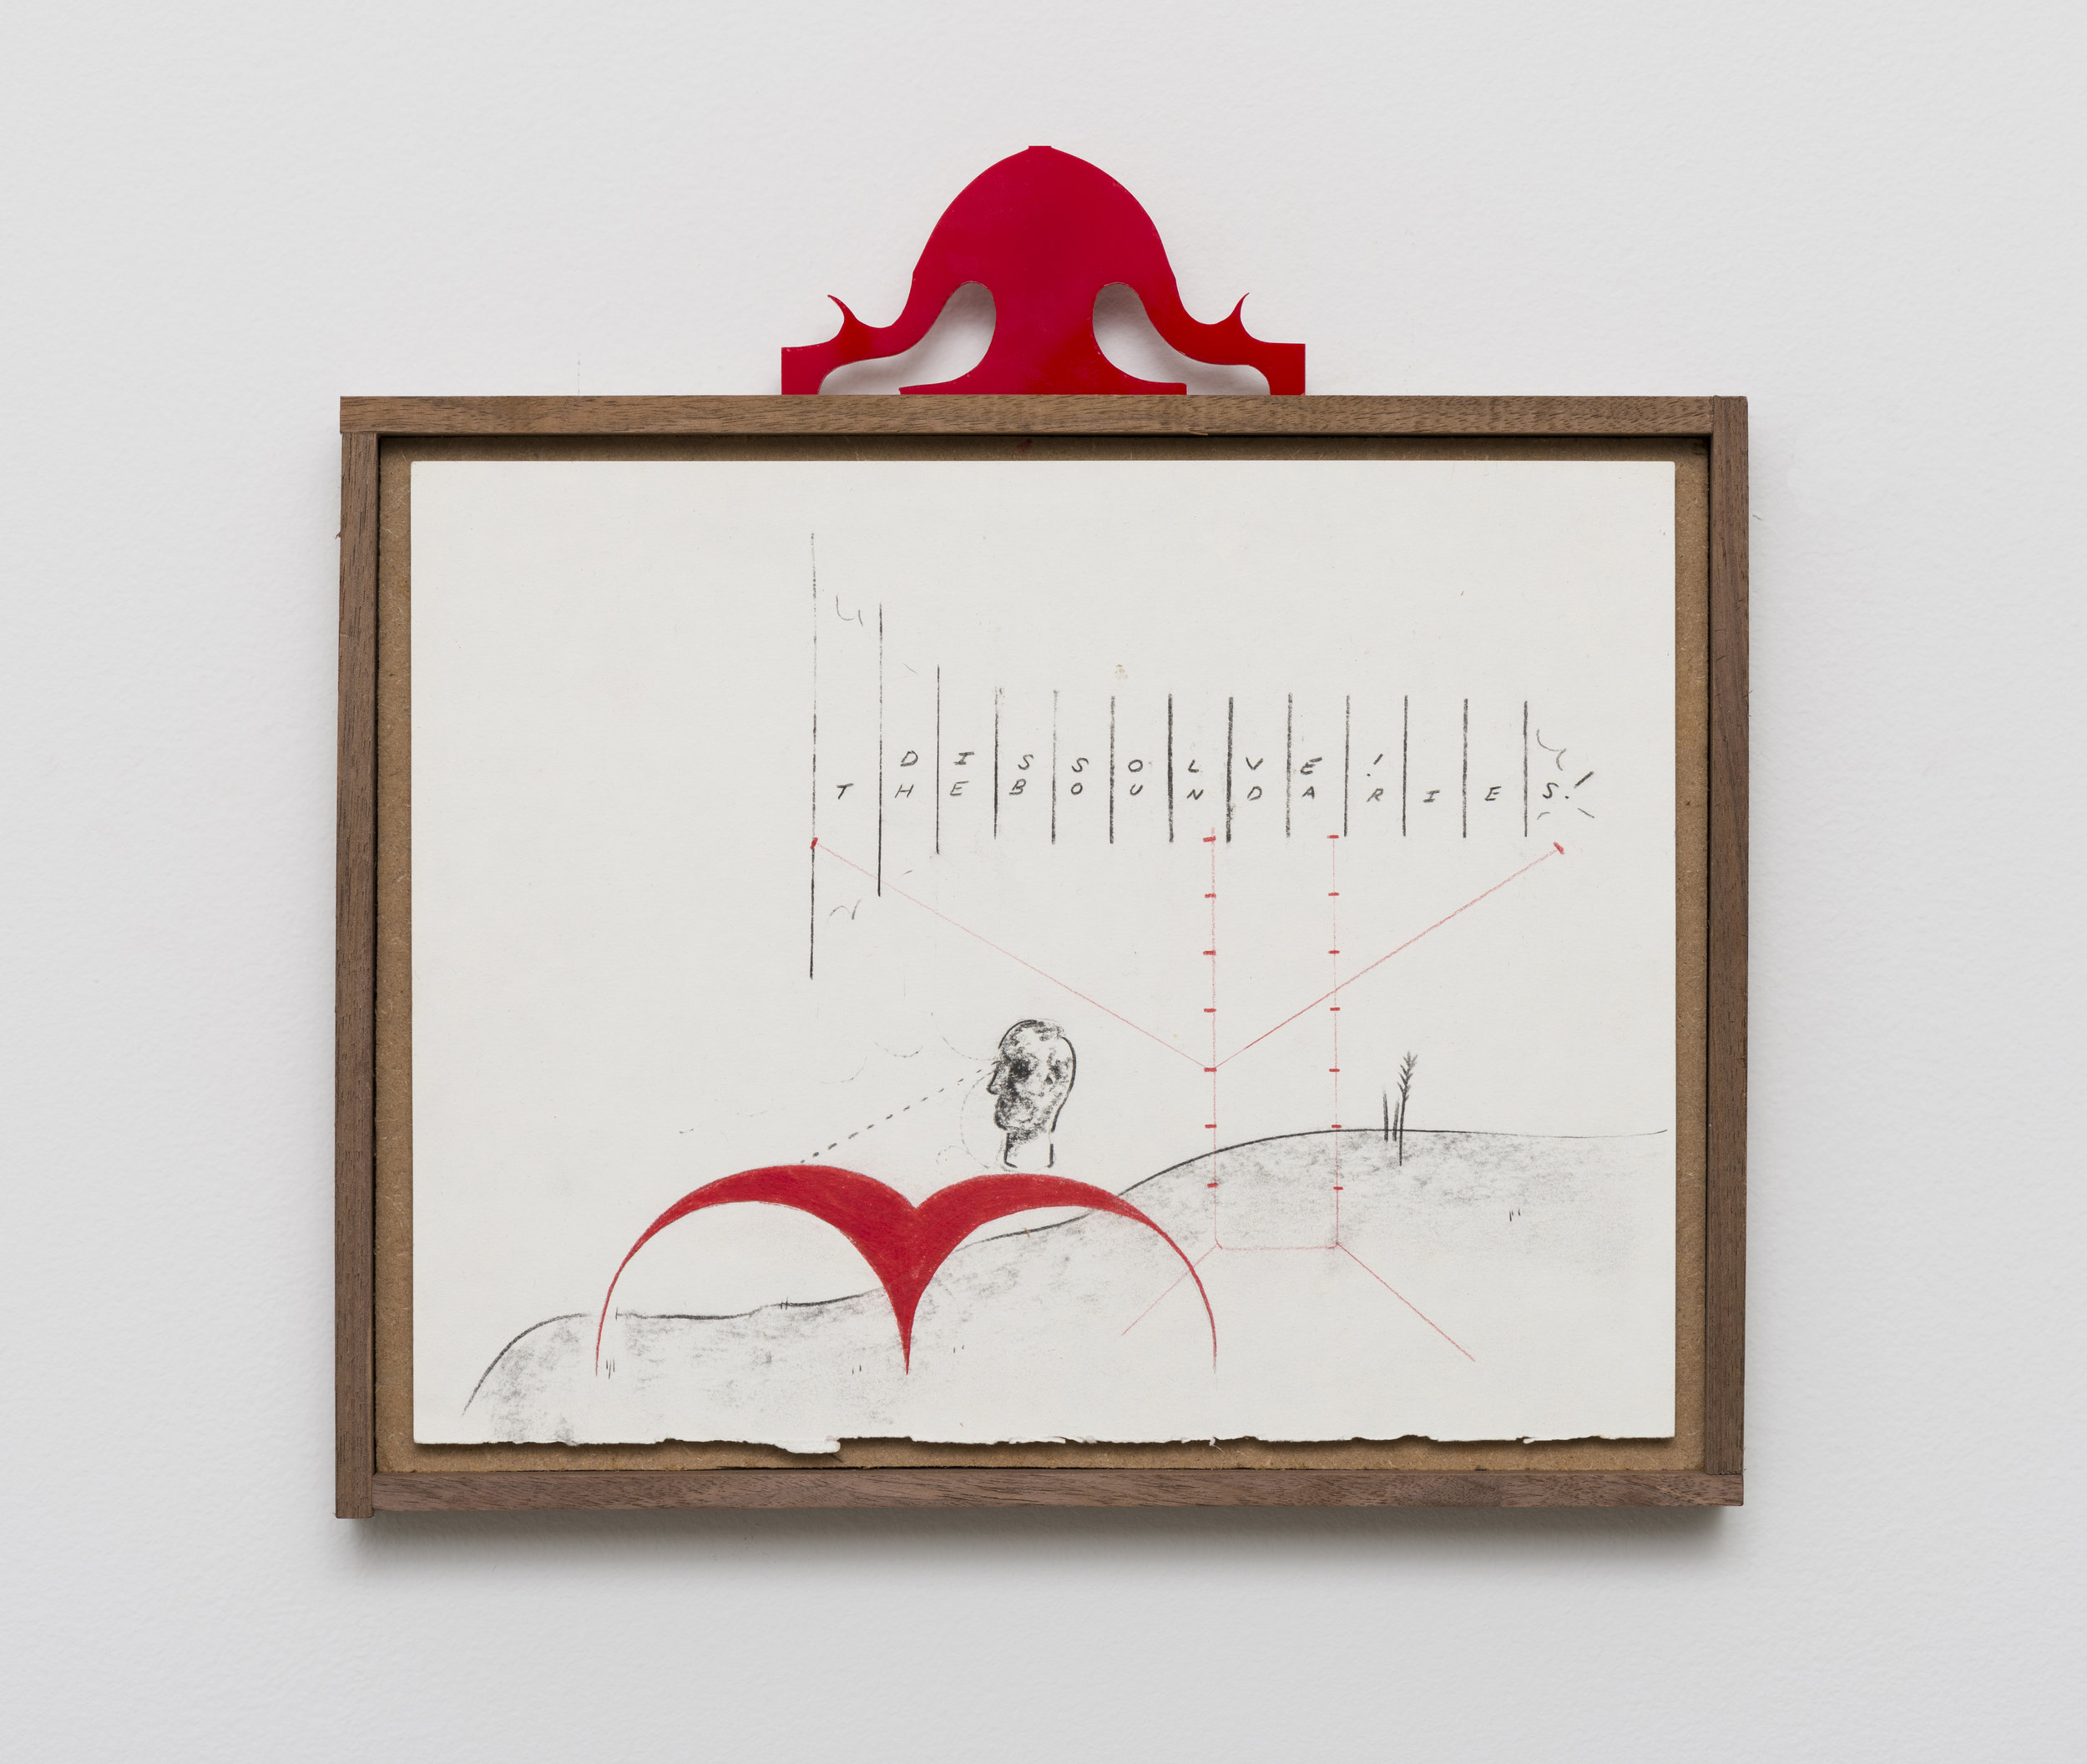 Harry Gould Harvey IV  Boundary Sculpture Garden   2019 Pencil on paper, plastic, walnut frame 12 x 12.25 in